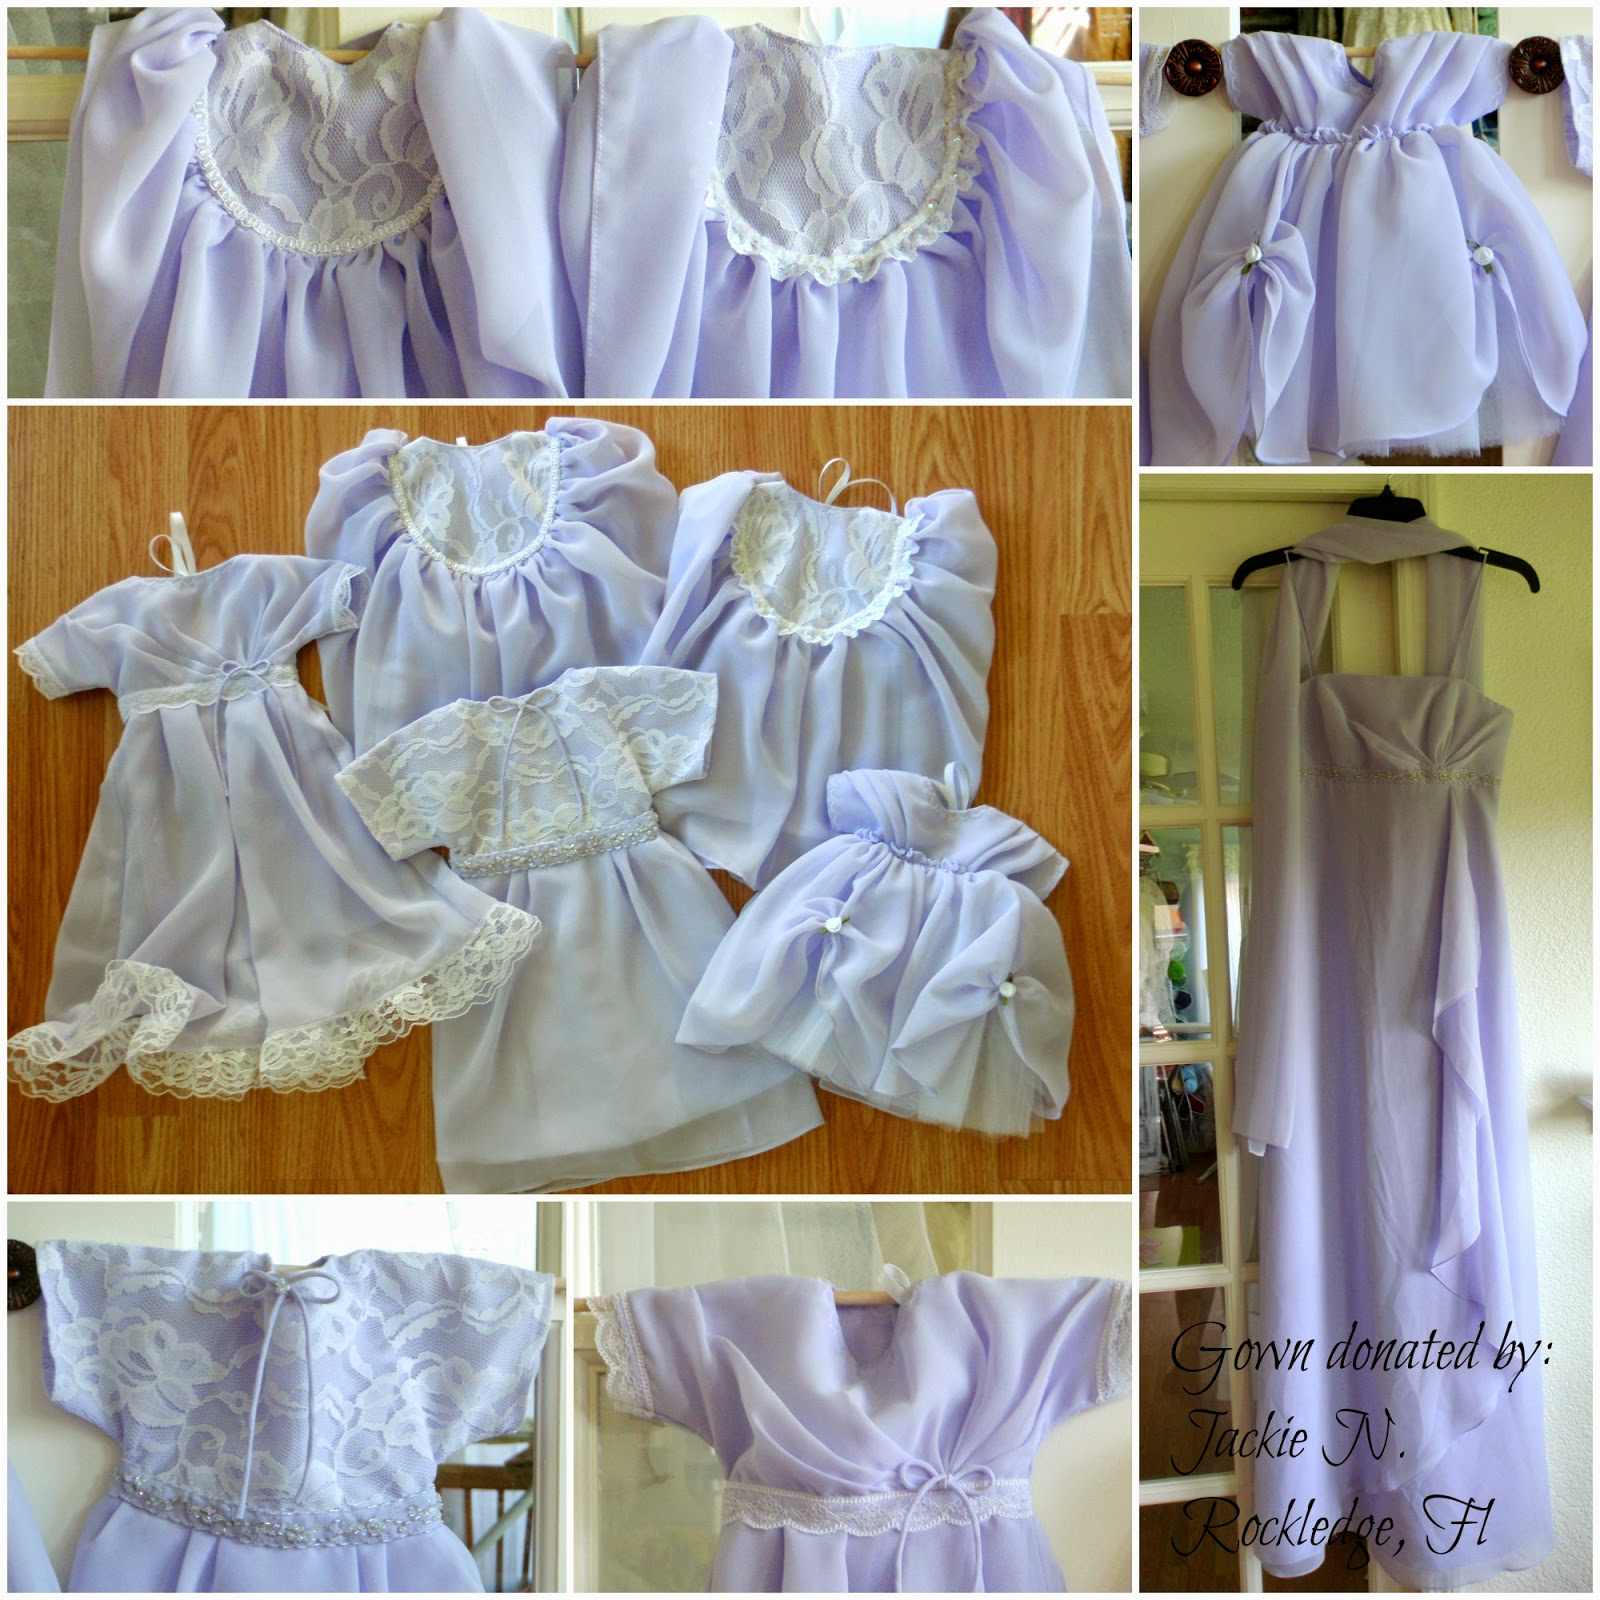 Angel Gowns: About Angel Gowns Ministry to Brevard County Florida